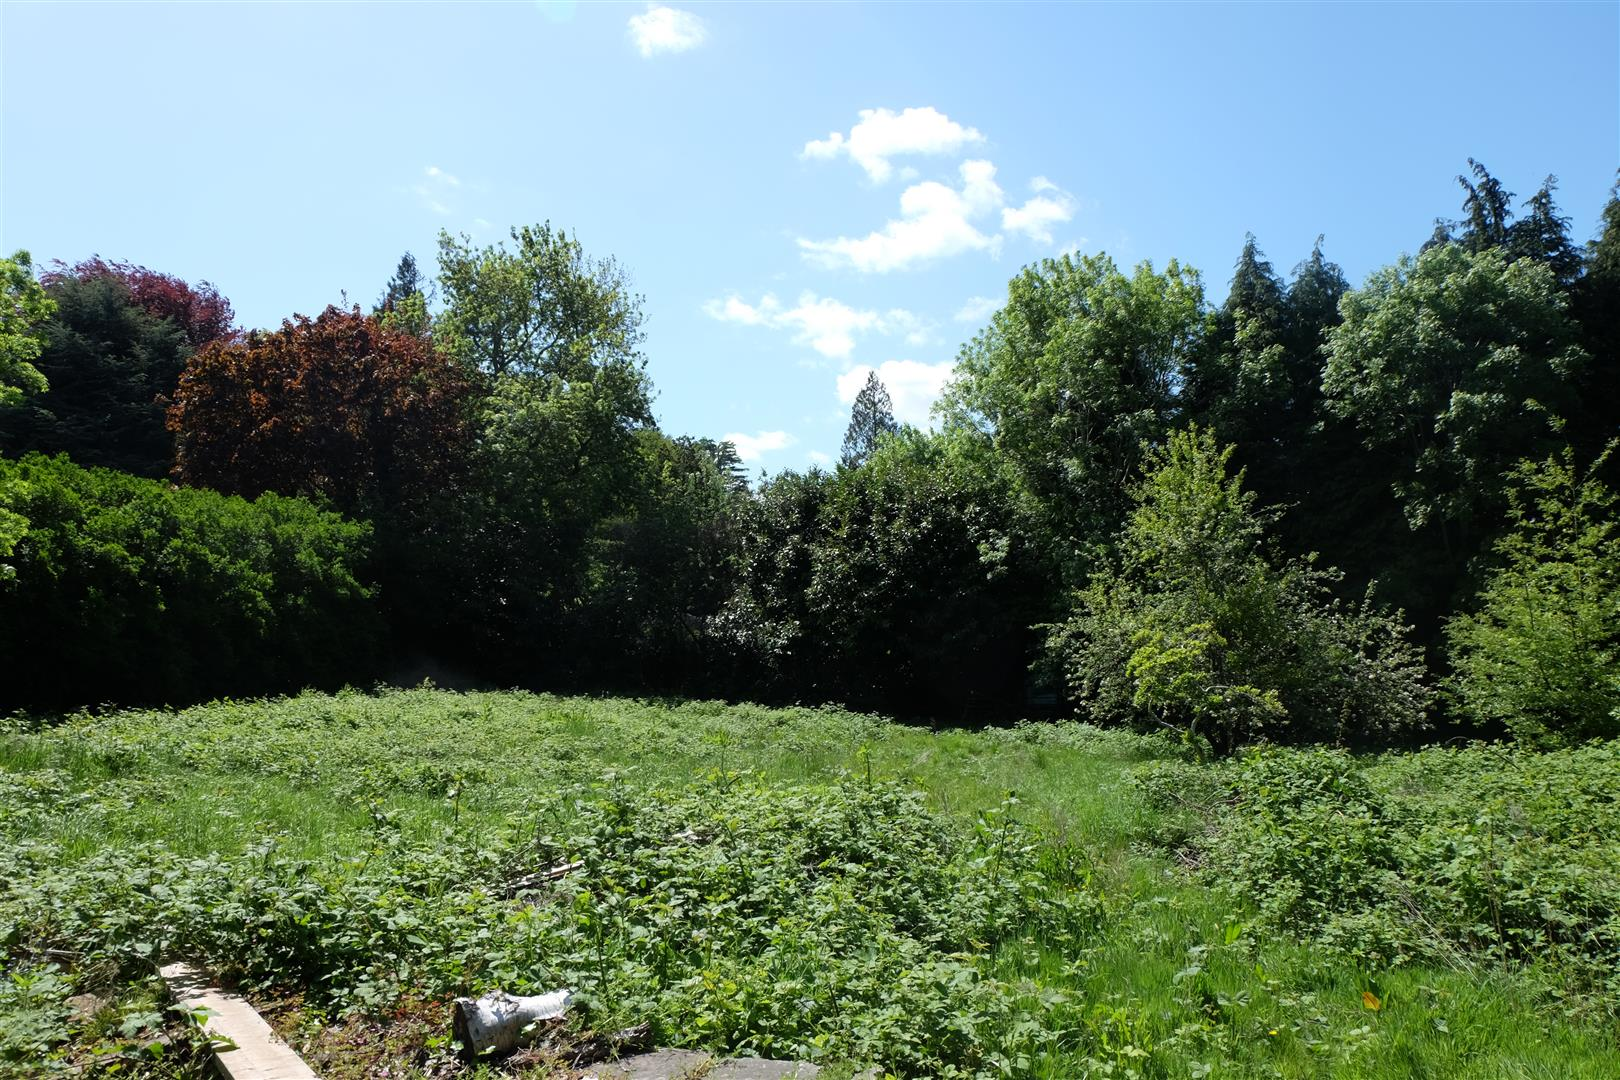 Images for Plot to Rear - Mariners Drive, Sneyd Park, Bristol EAID:hollismoapi BID:11